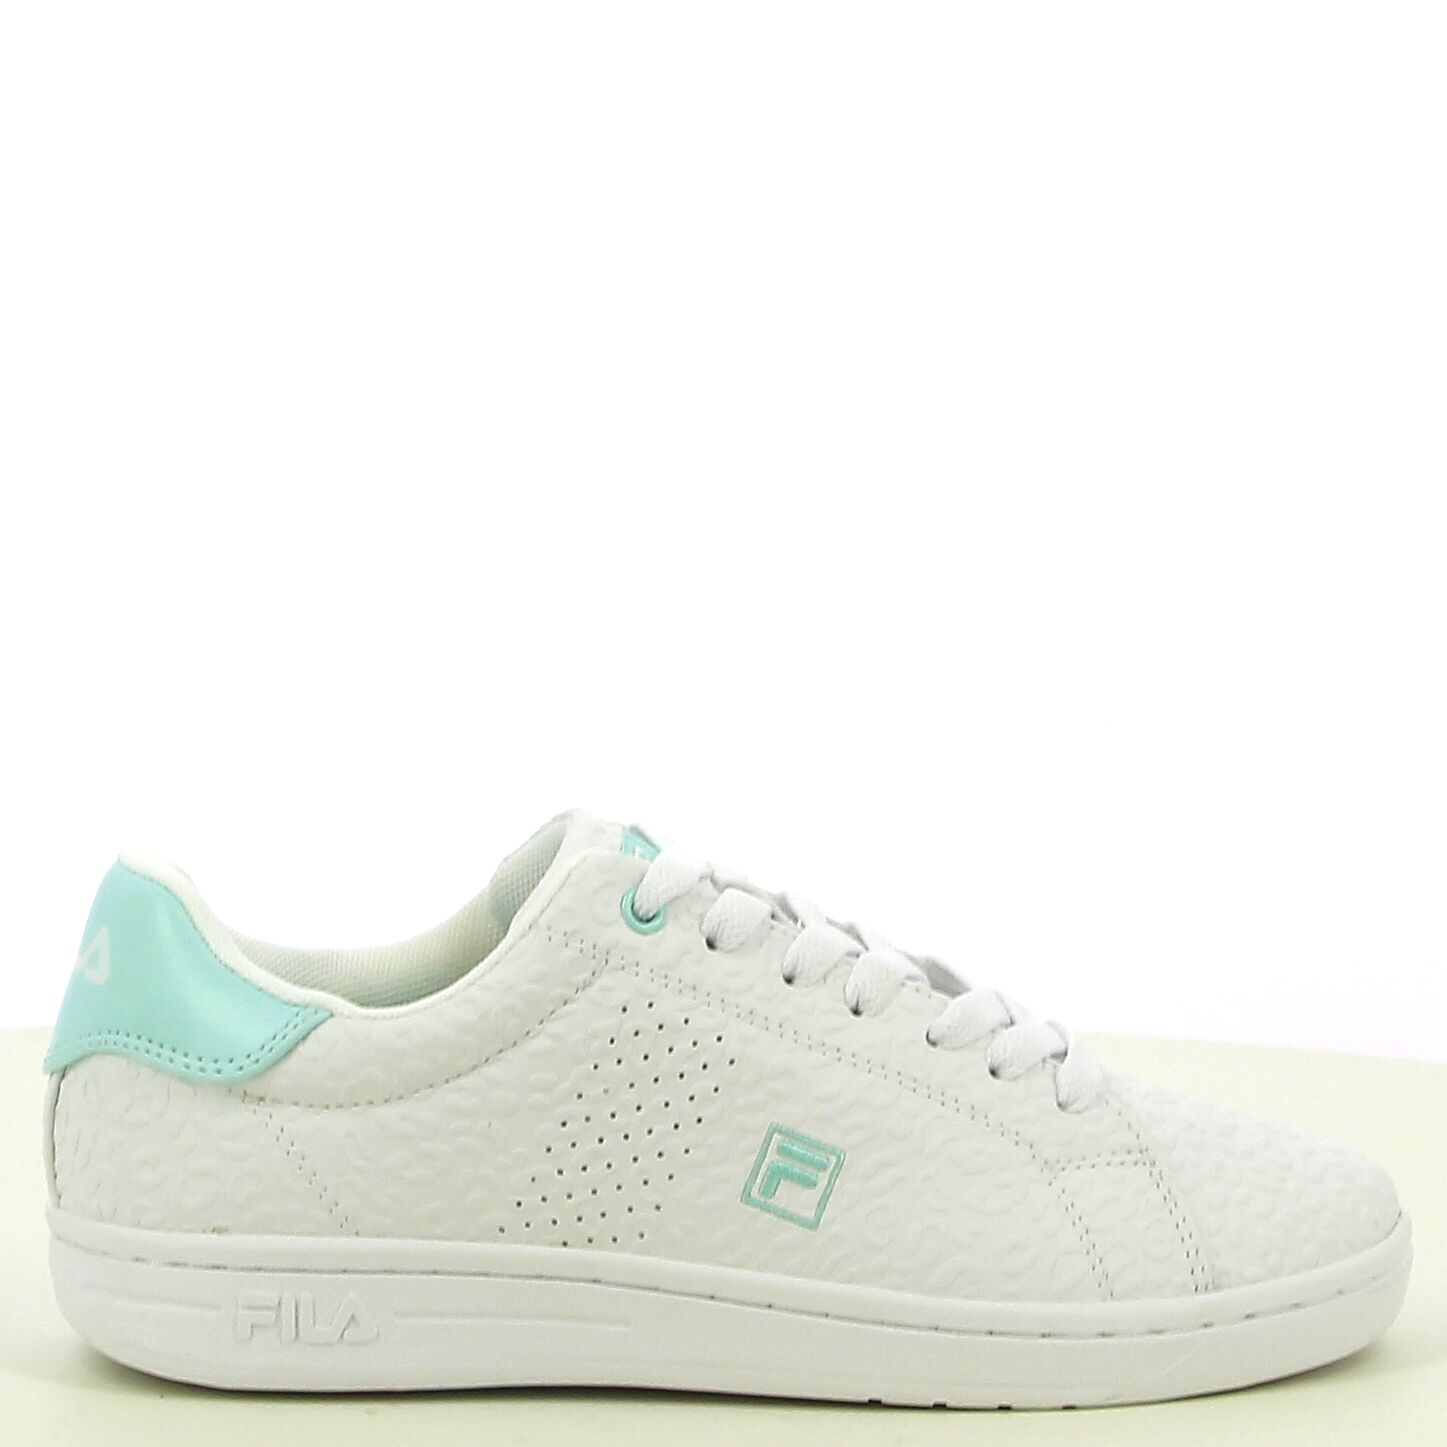 Fila - Wit - Sneakers